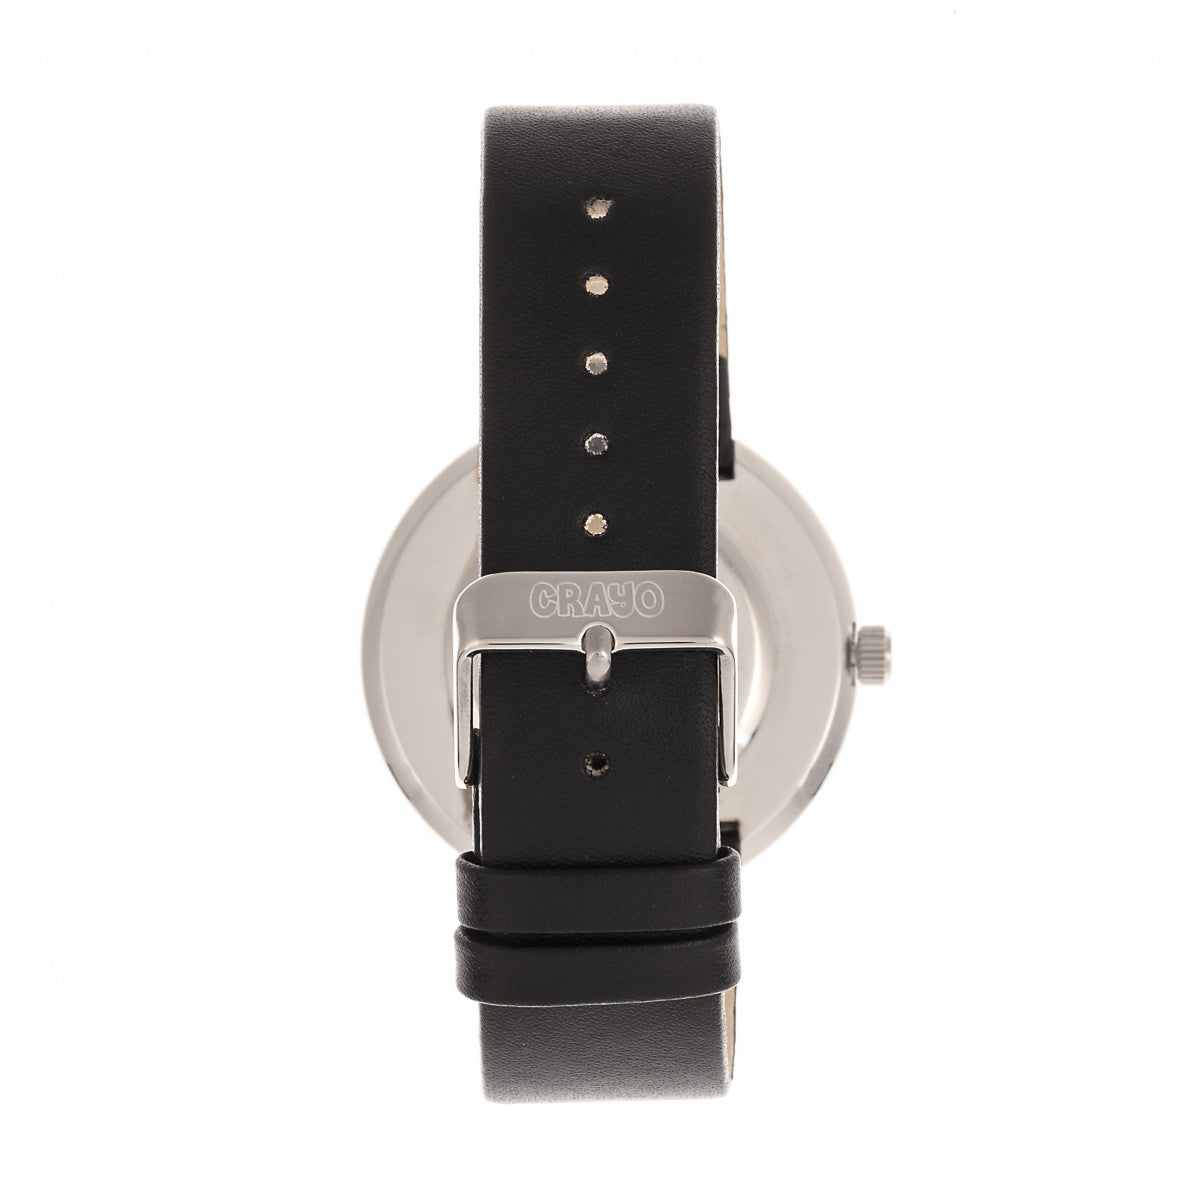 Crayo Button Leather-Band Unisex Watch w/ Day/Date - Black - CRACR0207